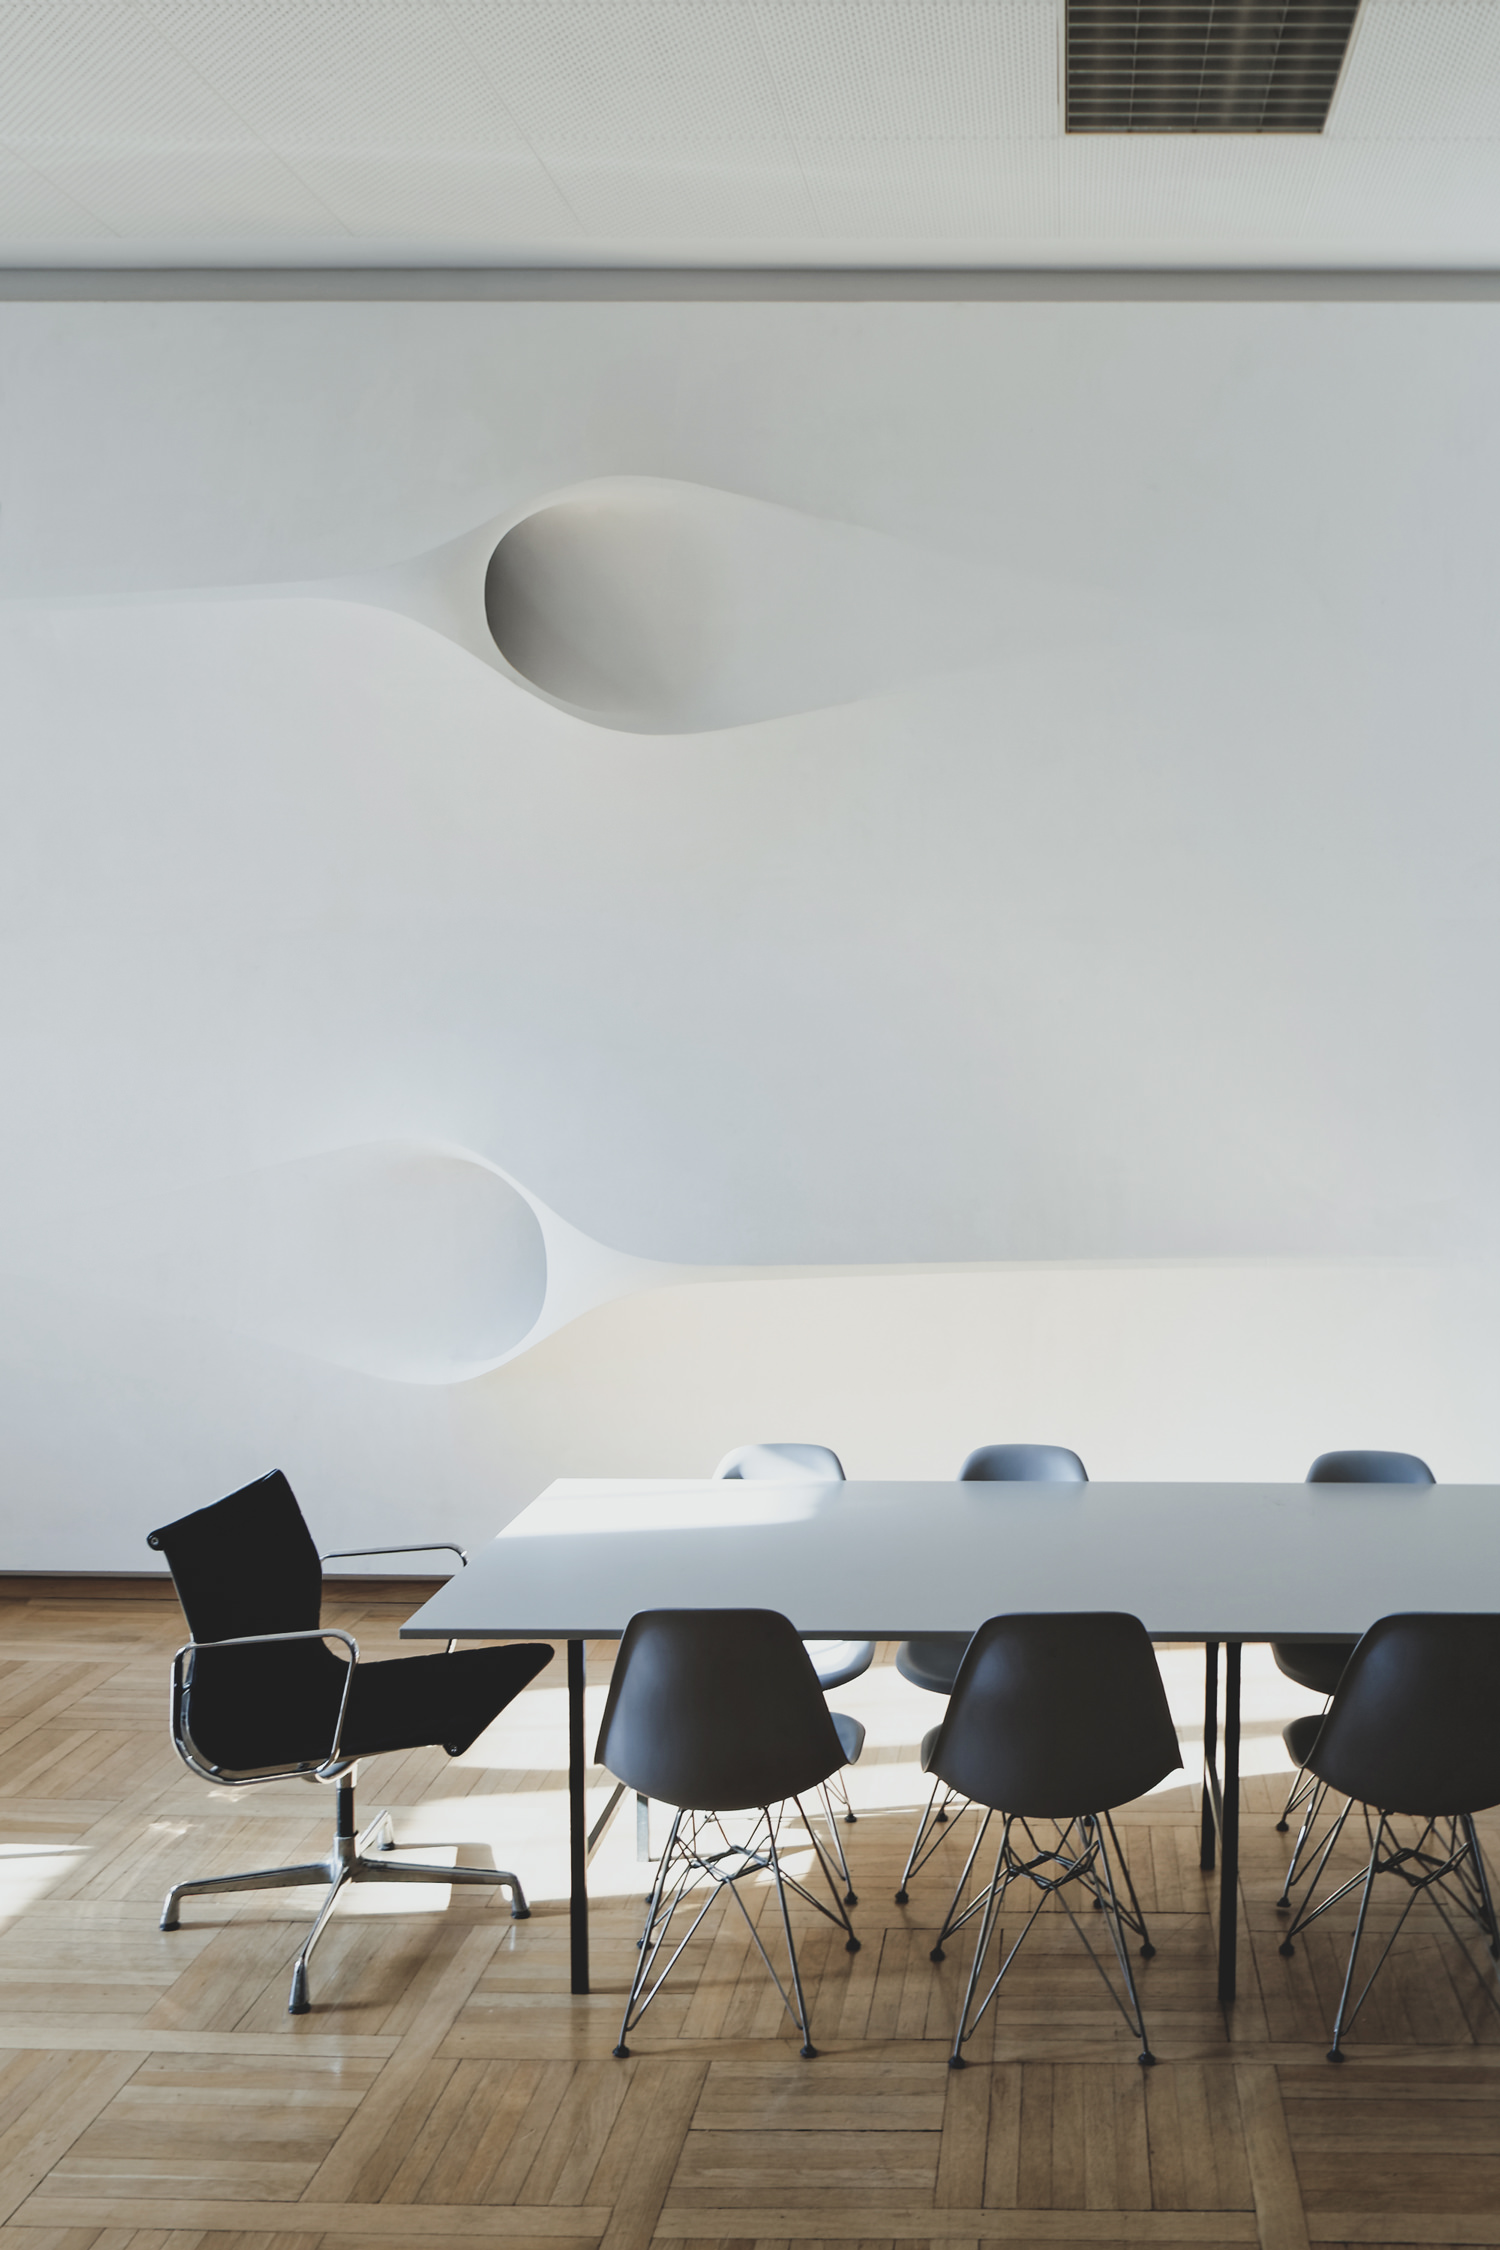 projector-ceiling-moh-architects-joerg-hugo-conferencetable1.jpg